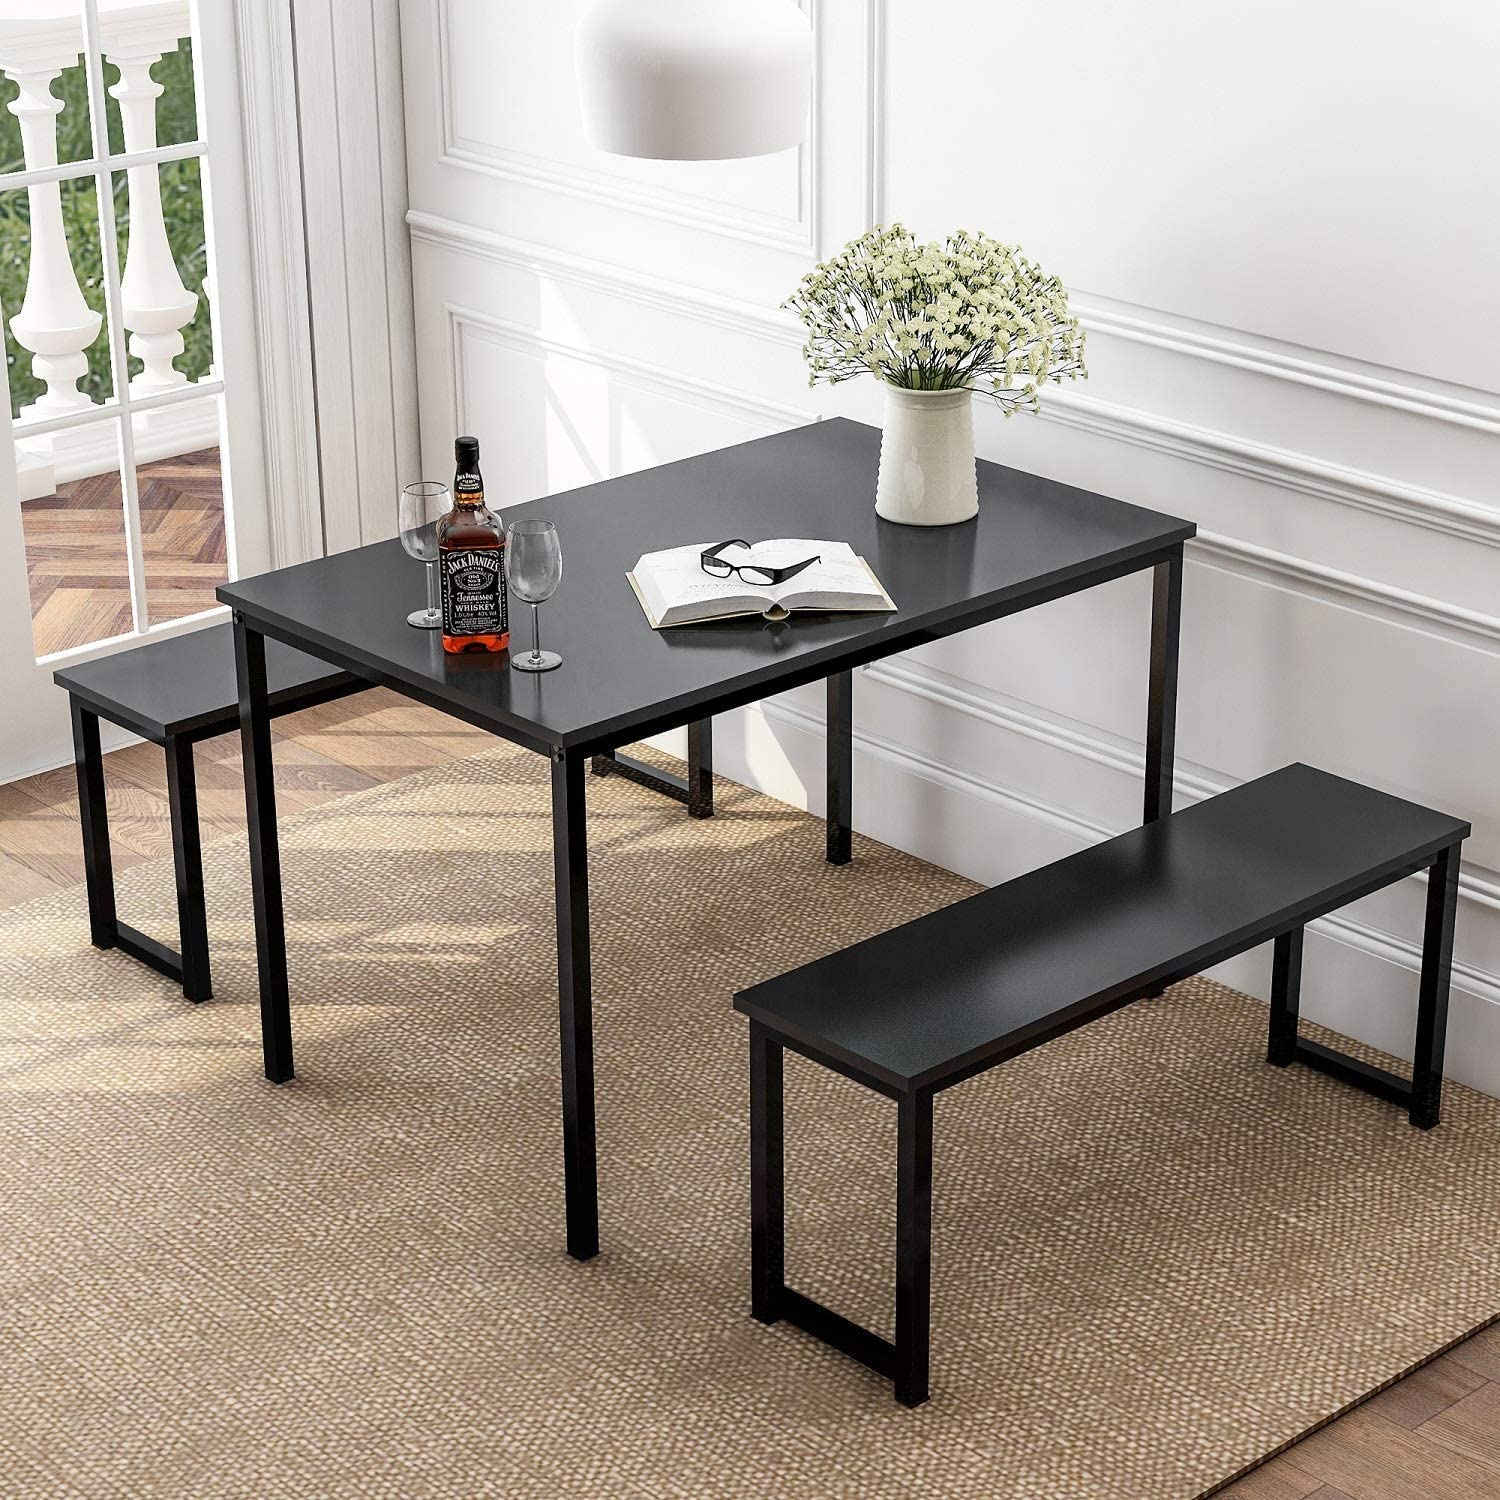 Depointer 3 Pieces Dining Table Set 2 Benches Kitchen Furniture, Modern Style Wood Top with Metal Frame,Black